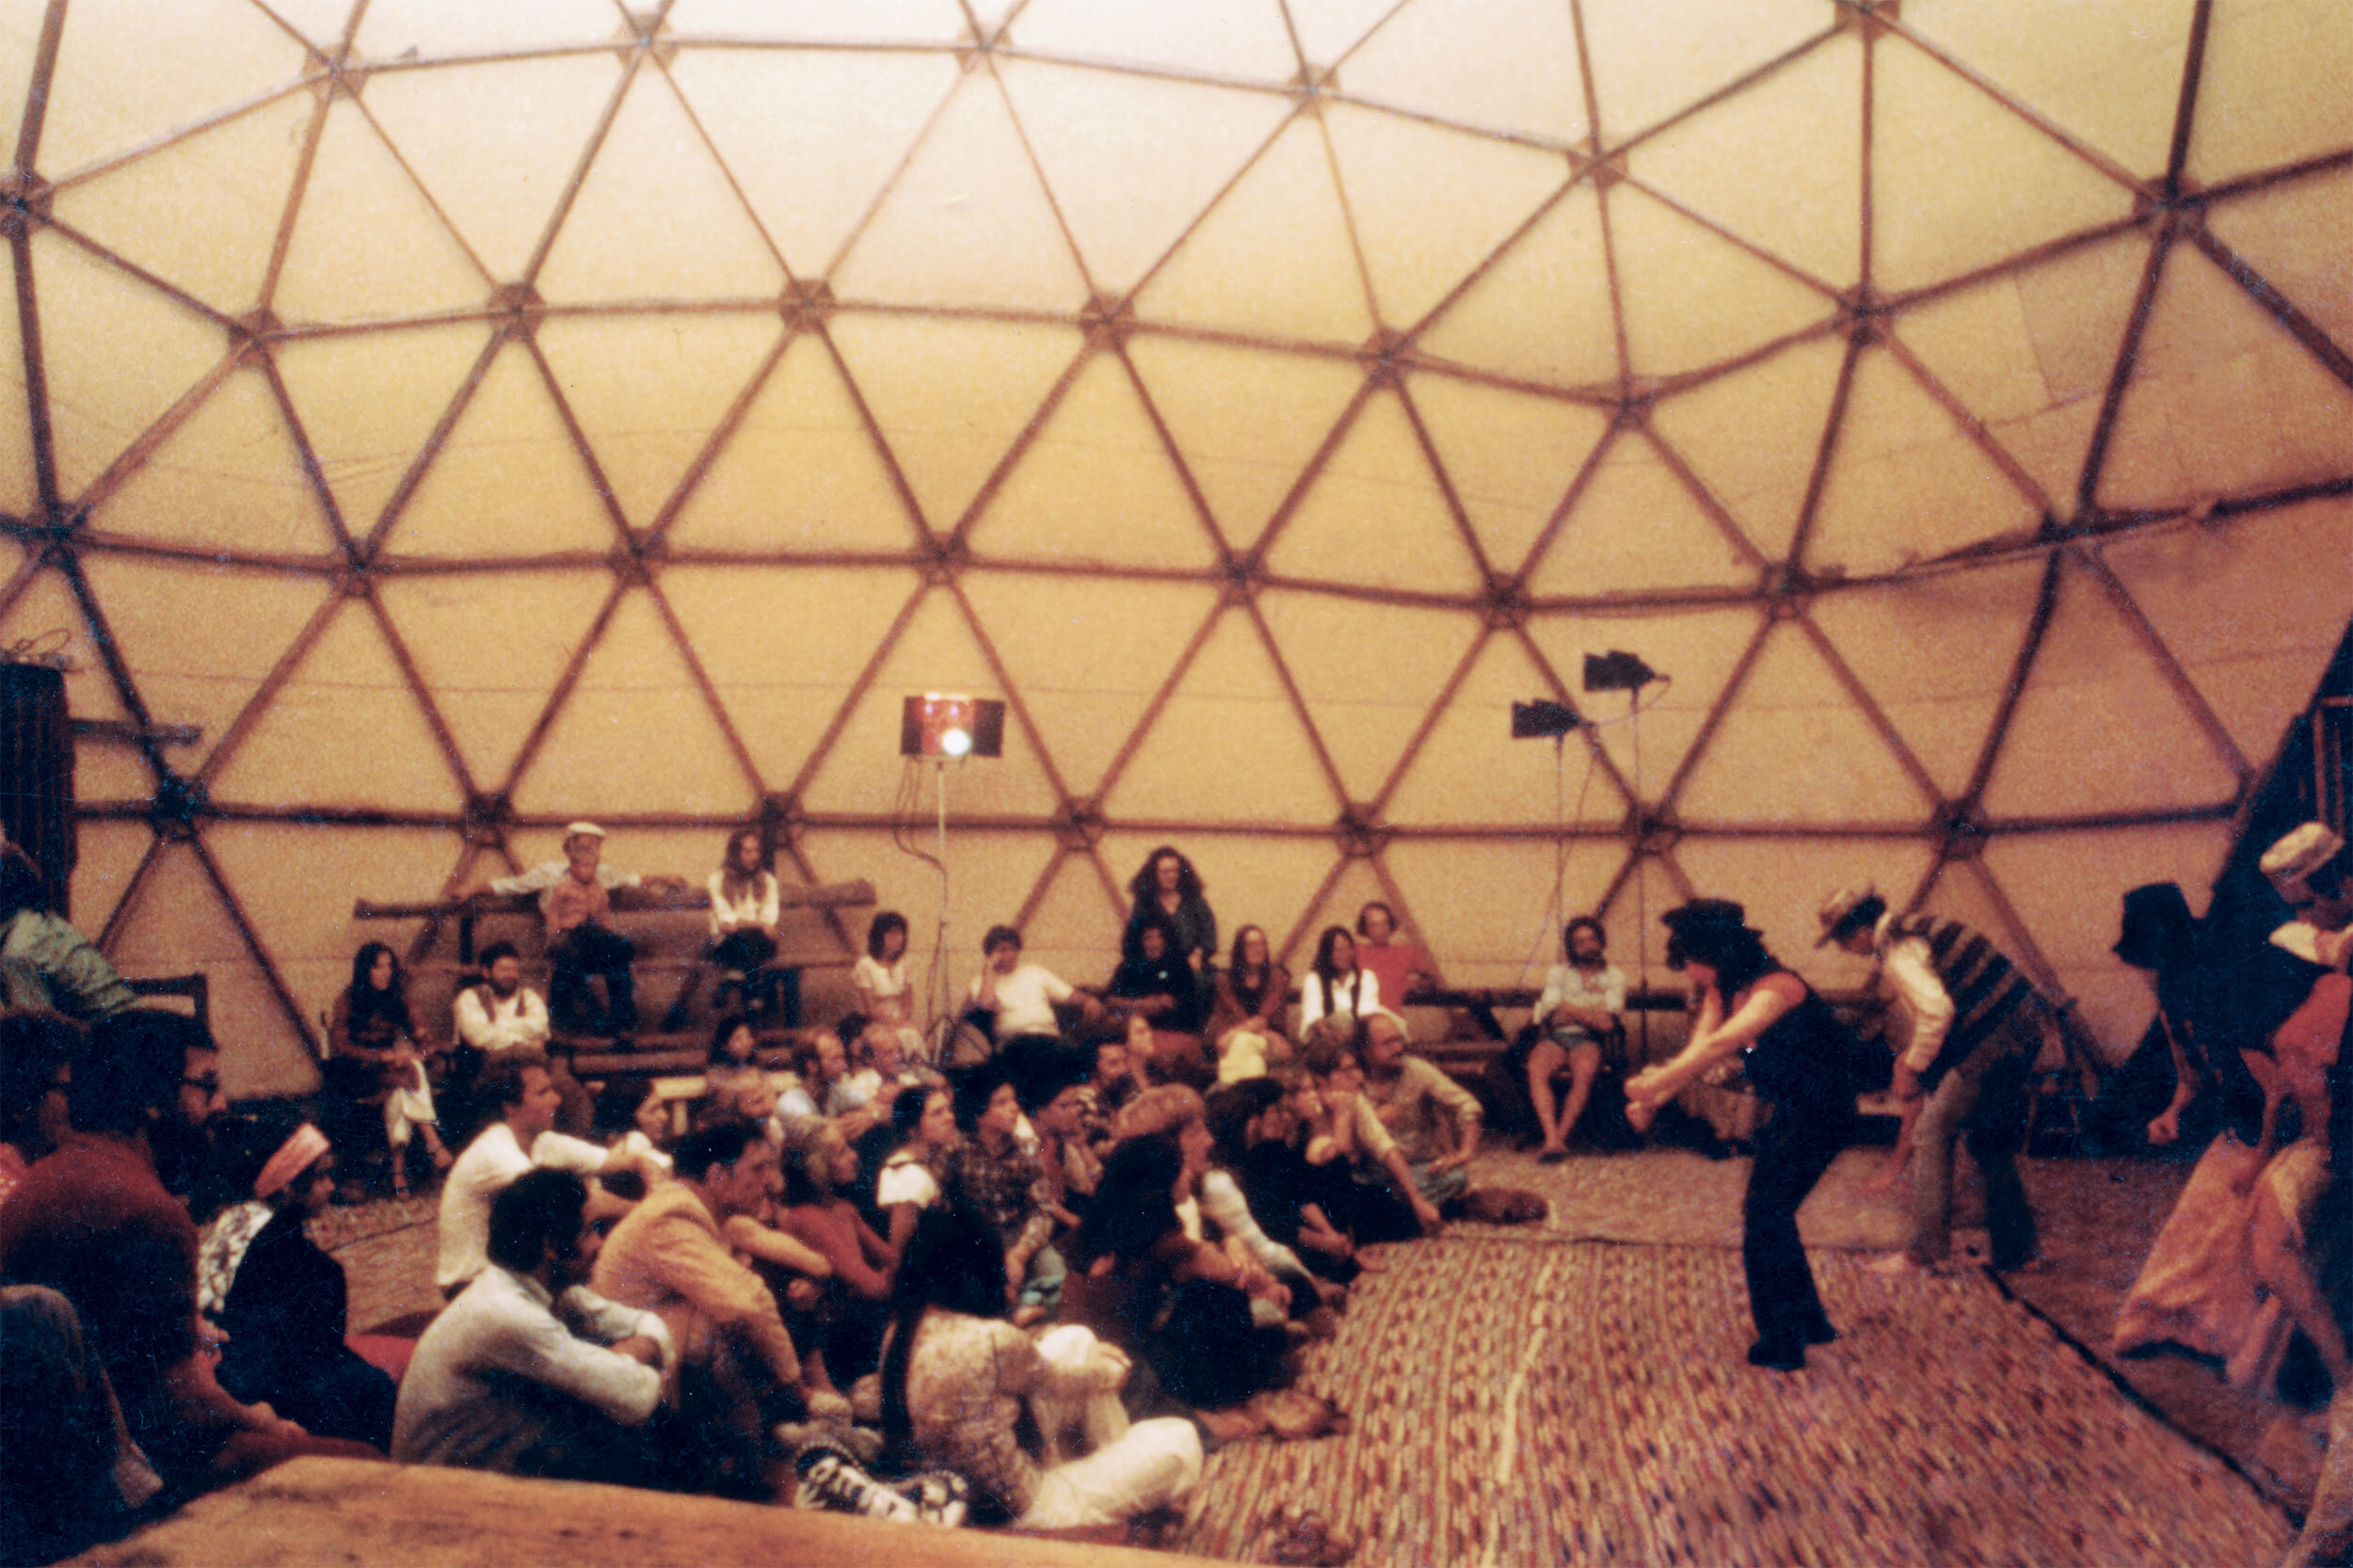 Theater of All Possibilities performance in the geodesic dome